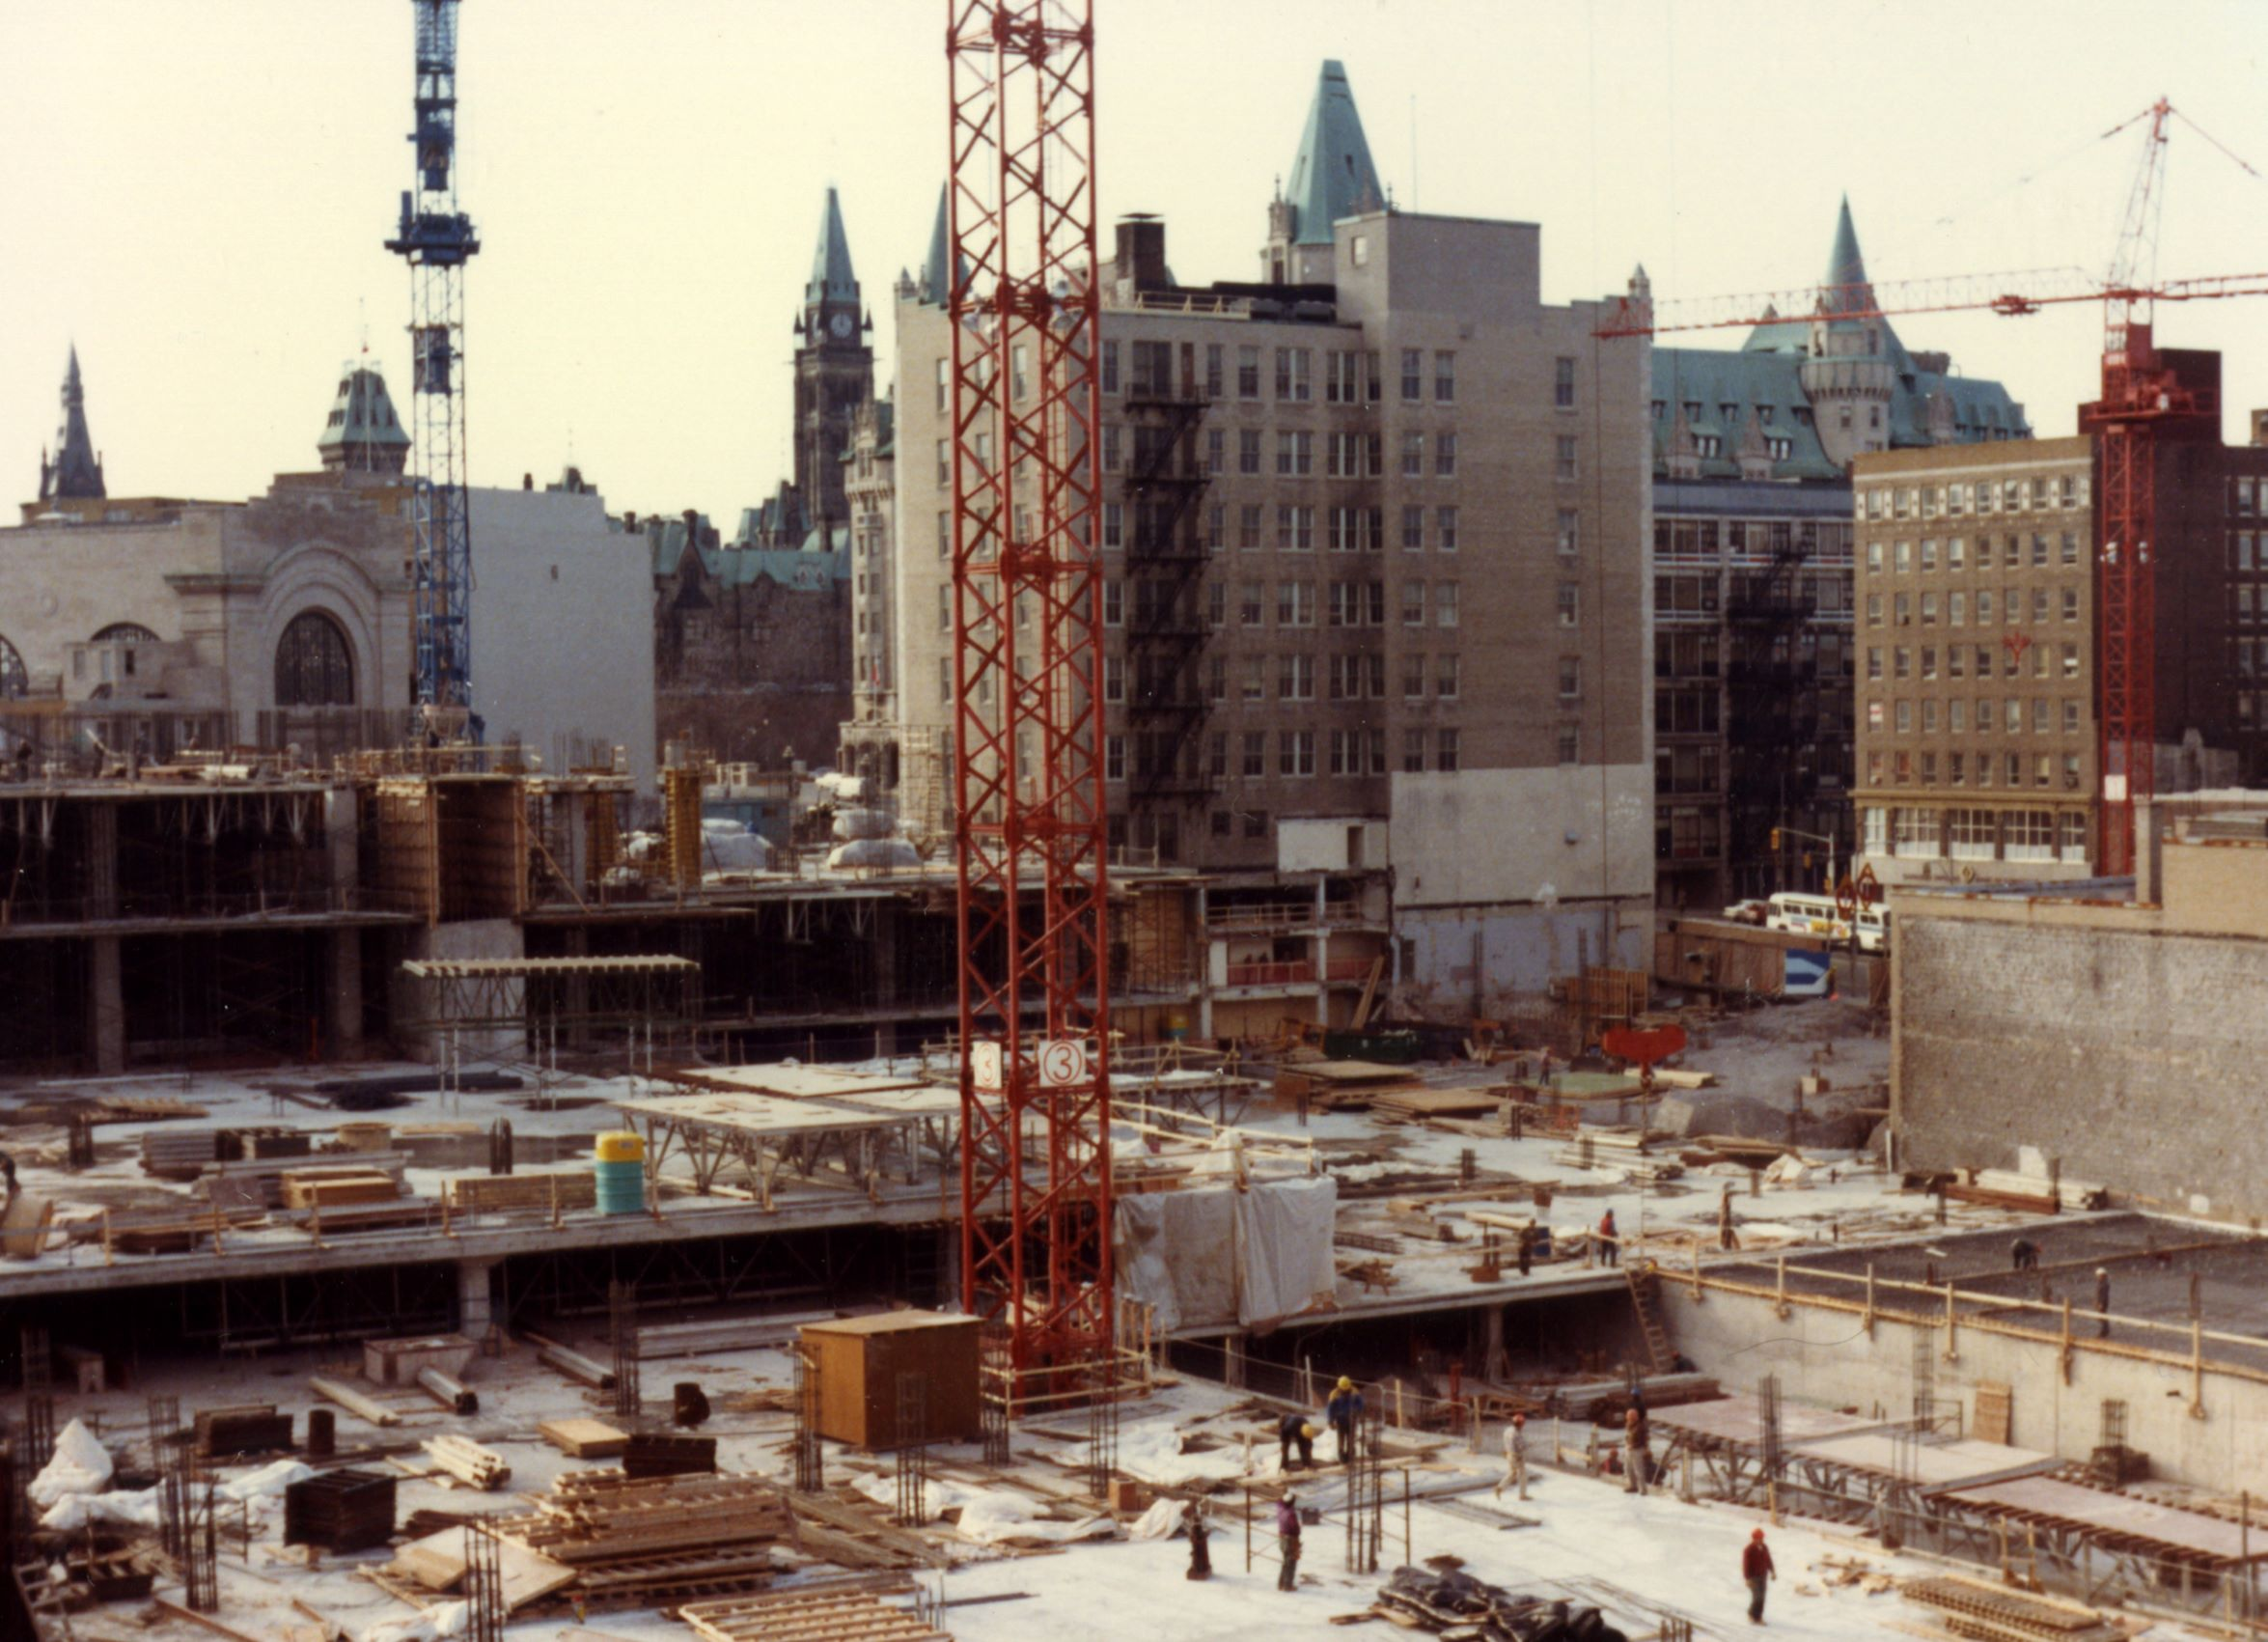 Construction of the Rideau Centre, 1981 (City of Ottawa Archives)